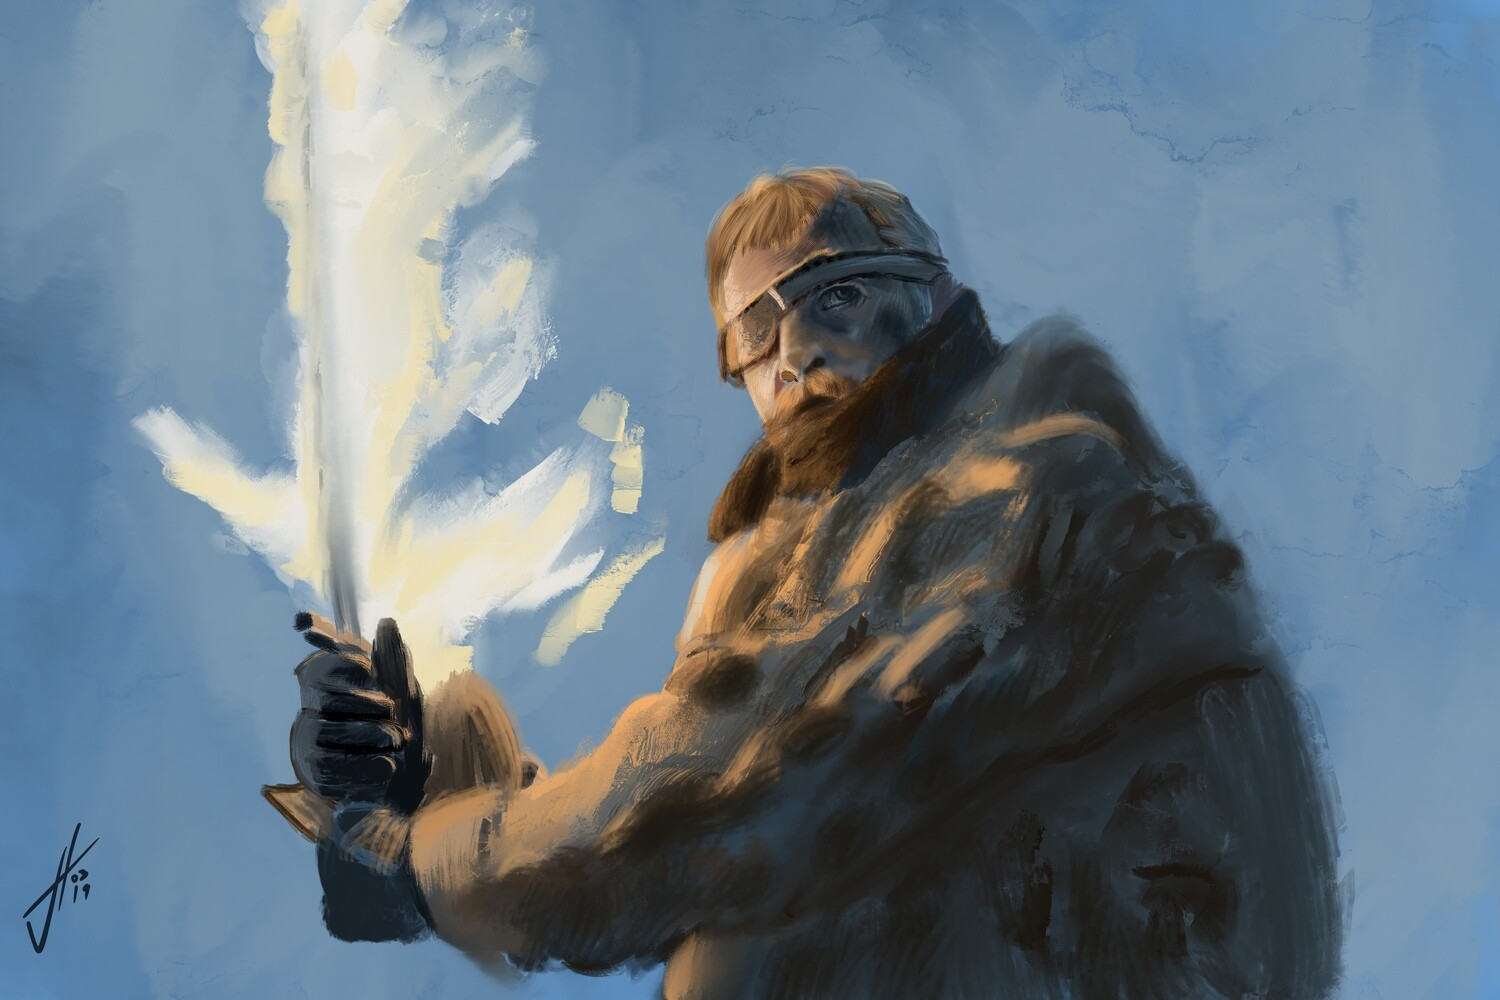 Game of Thrones Beric Dondarrion Art Print